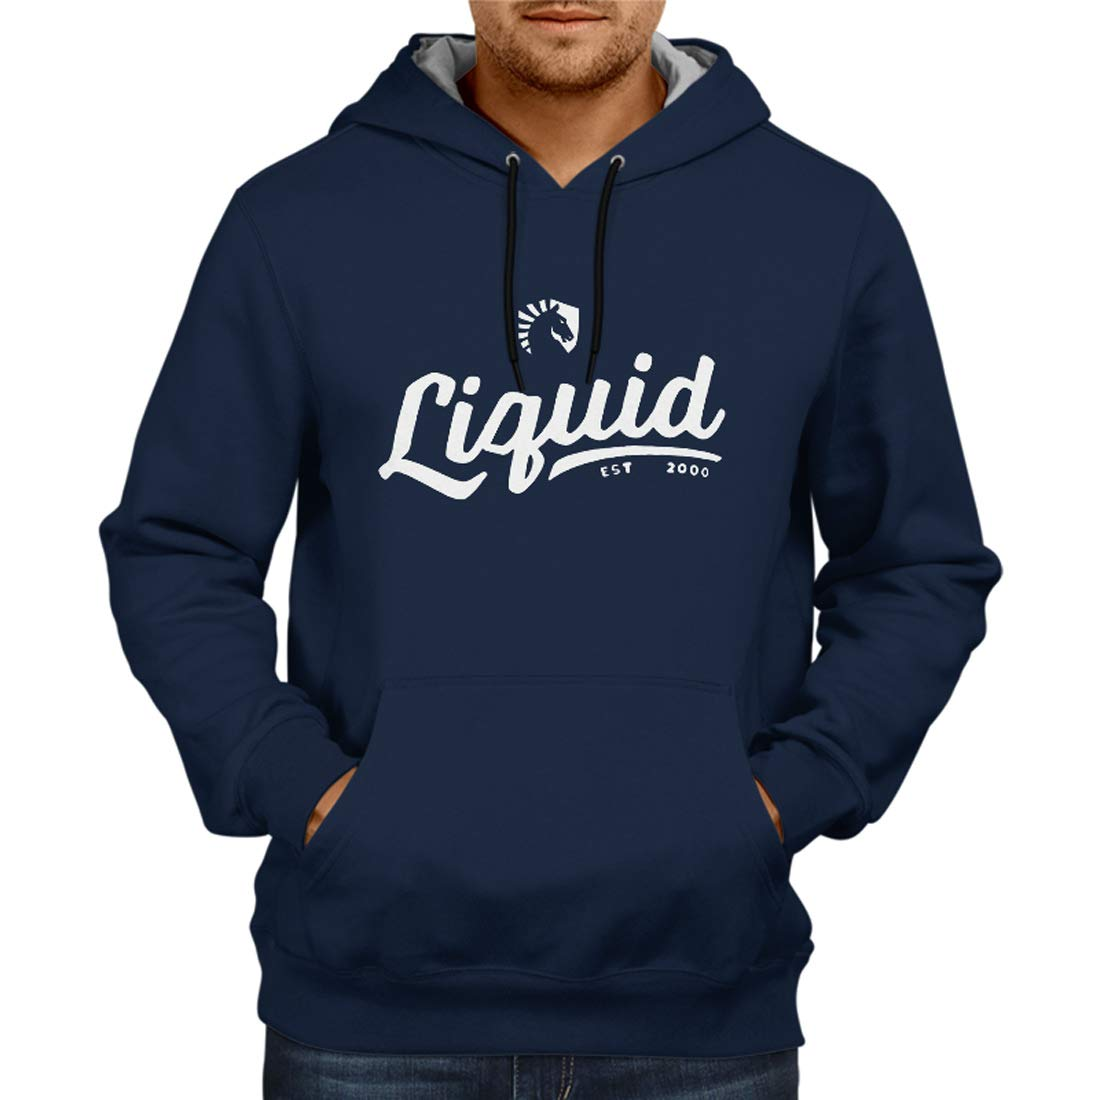 Fashion And Youth Team Liquid Navy Blue Gaming Hoodie | Dota 2 Jacket Sweatshirt | Starcraft Hoodie | Esports Hoodie | Mens Hoodies Hoodies for Mens